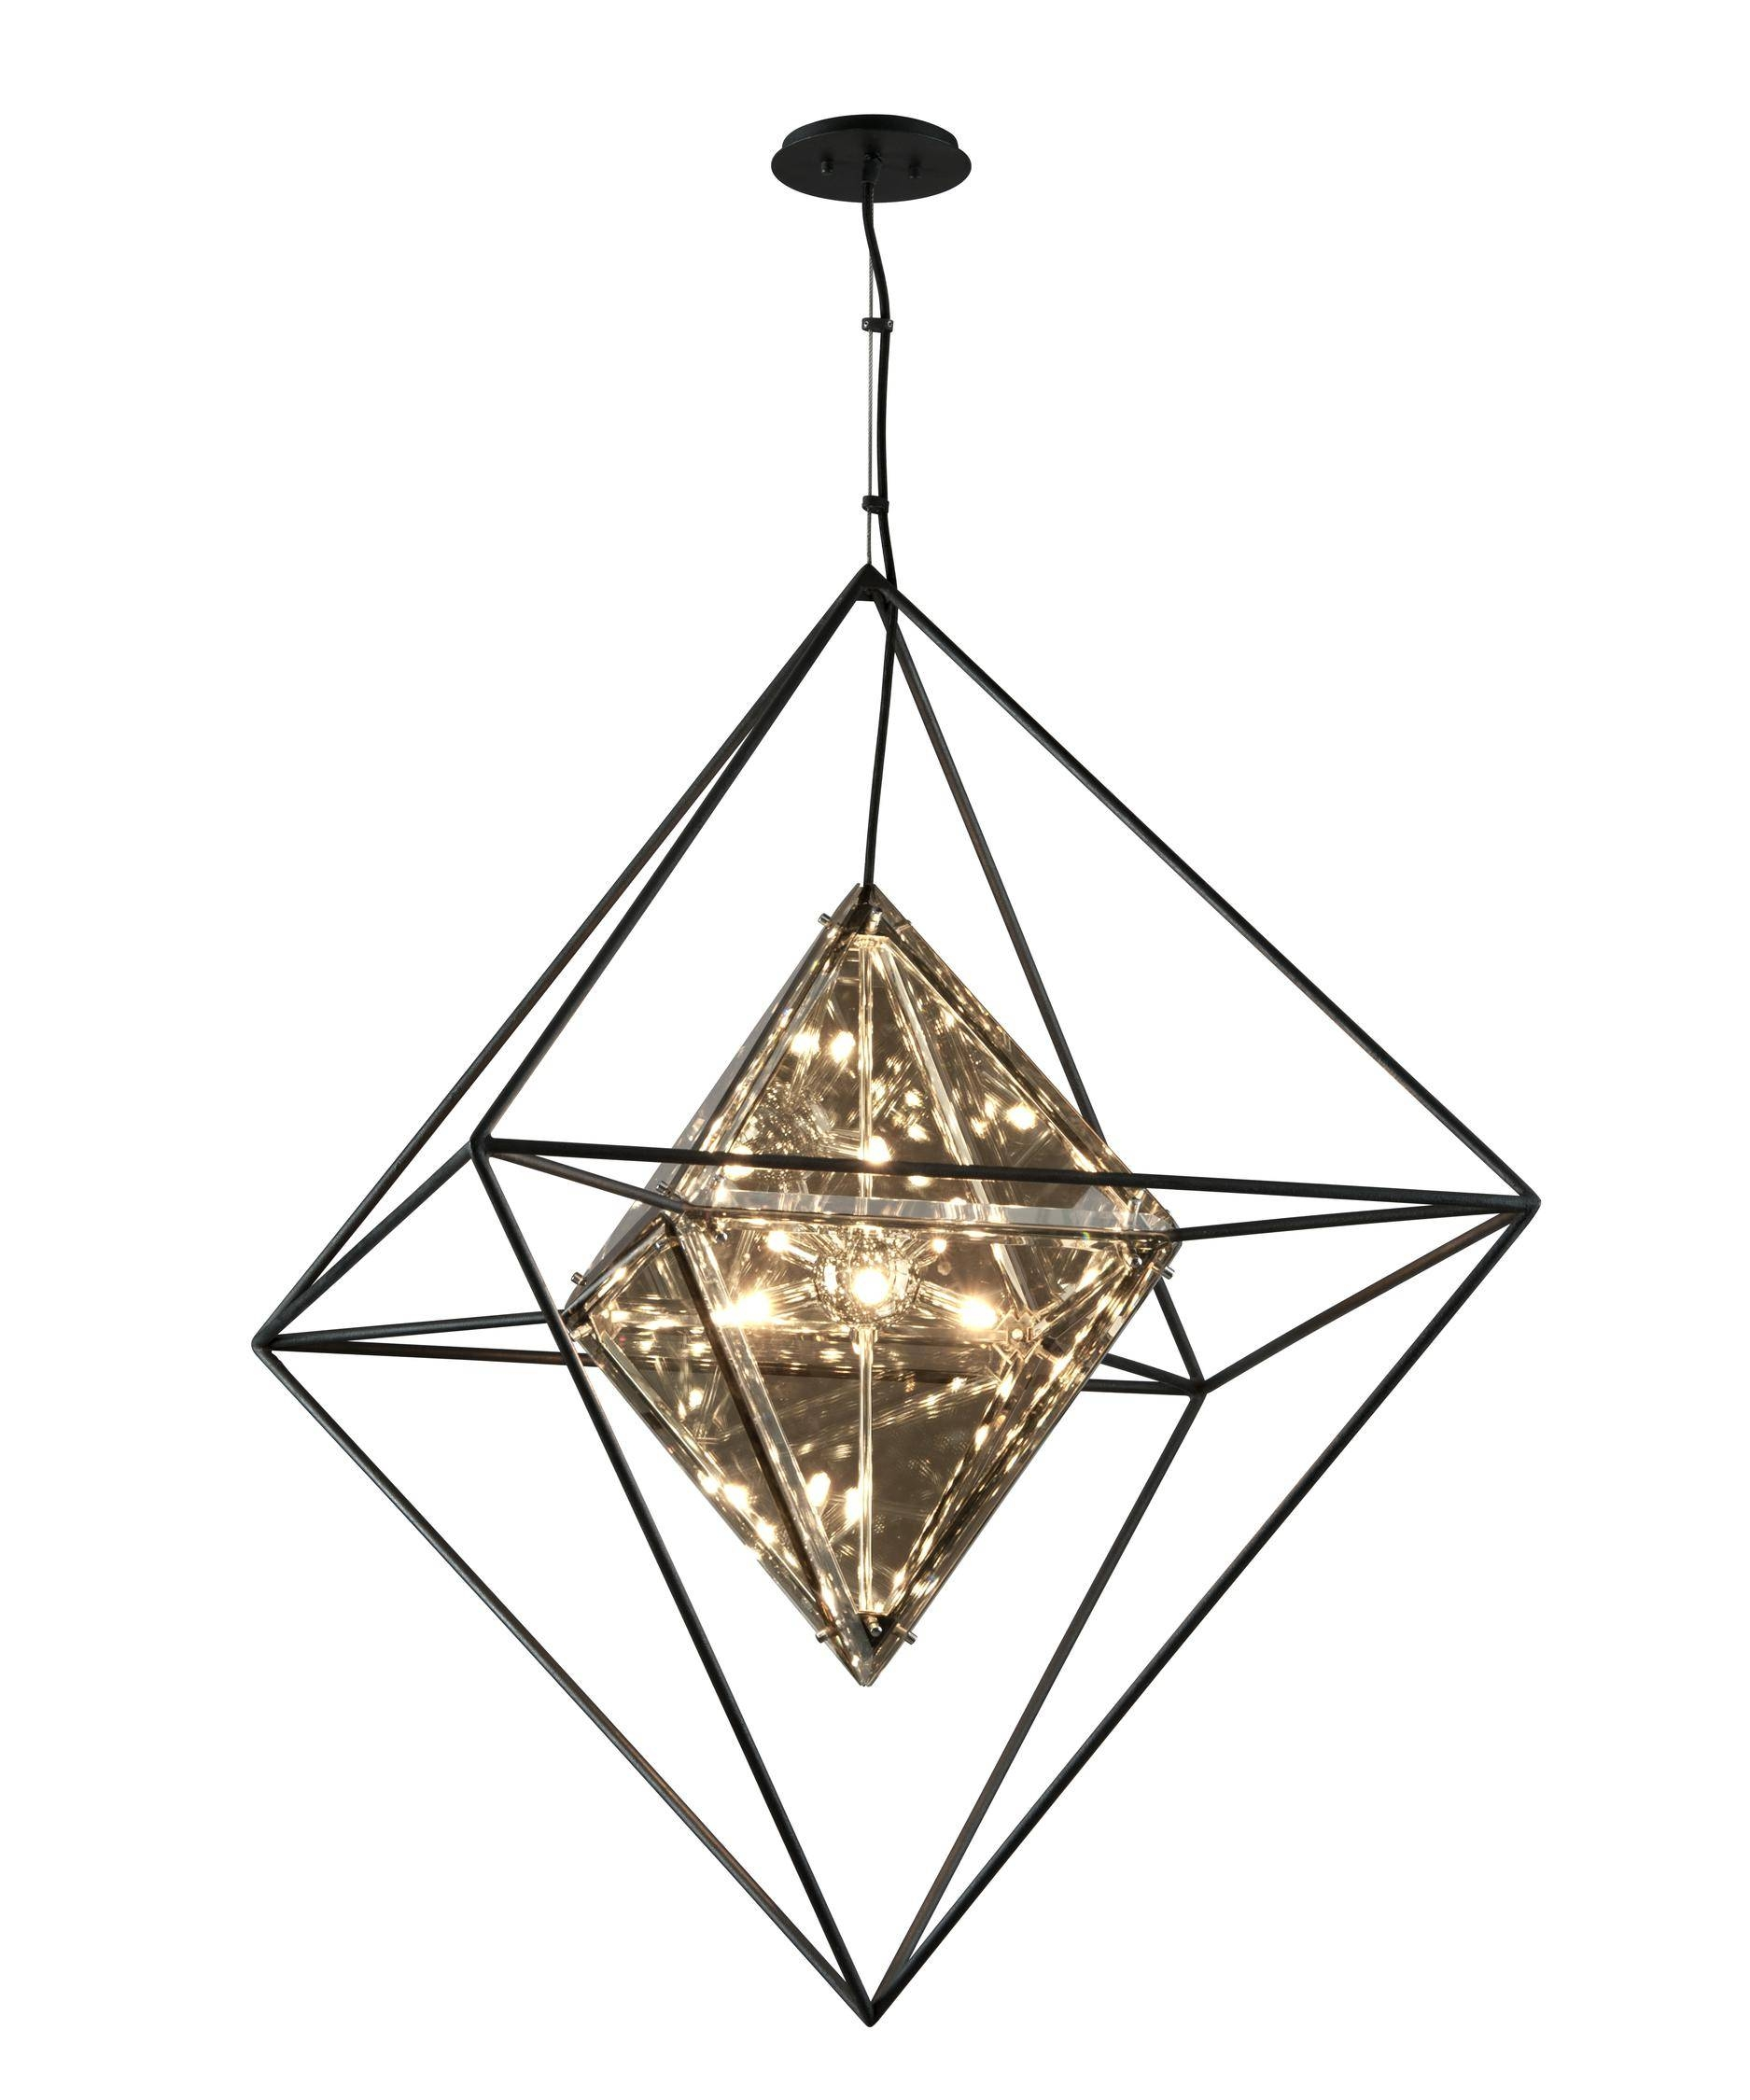 Troy Lighting F5327 Epic 30 Inch Wide 8 Light Large Pendant pertaining to Epic Lamps Pendant Lights (Image 14 of 15)